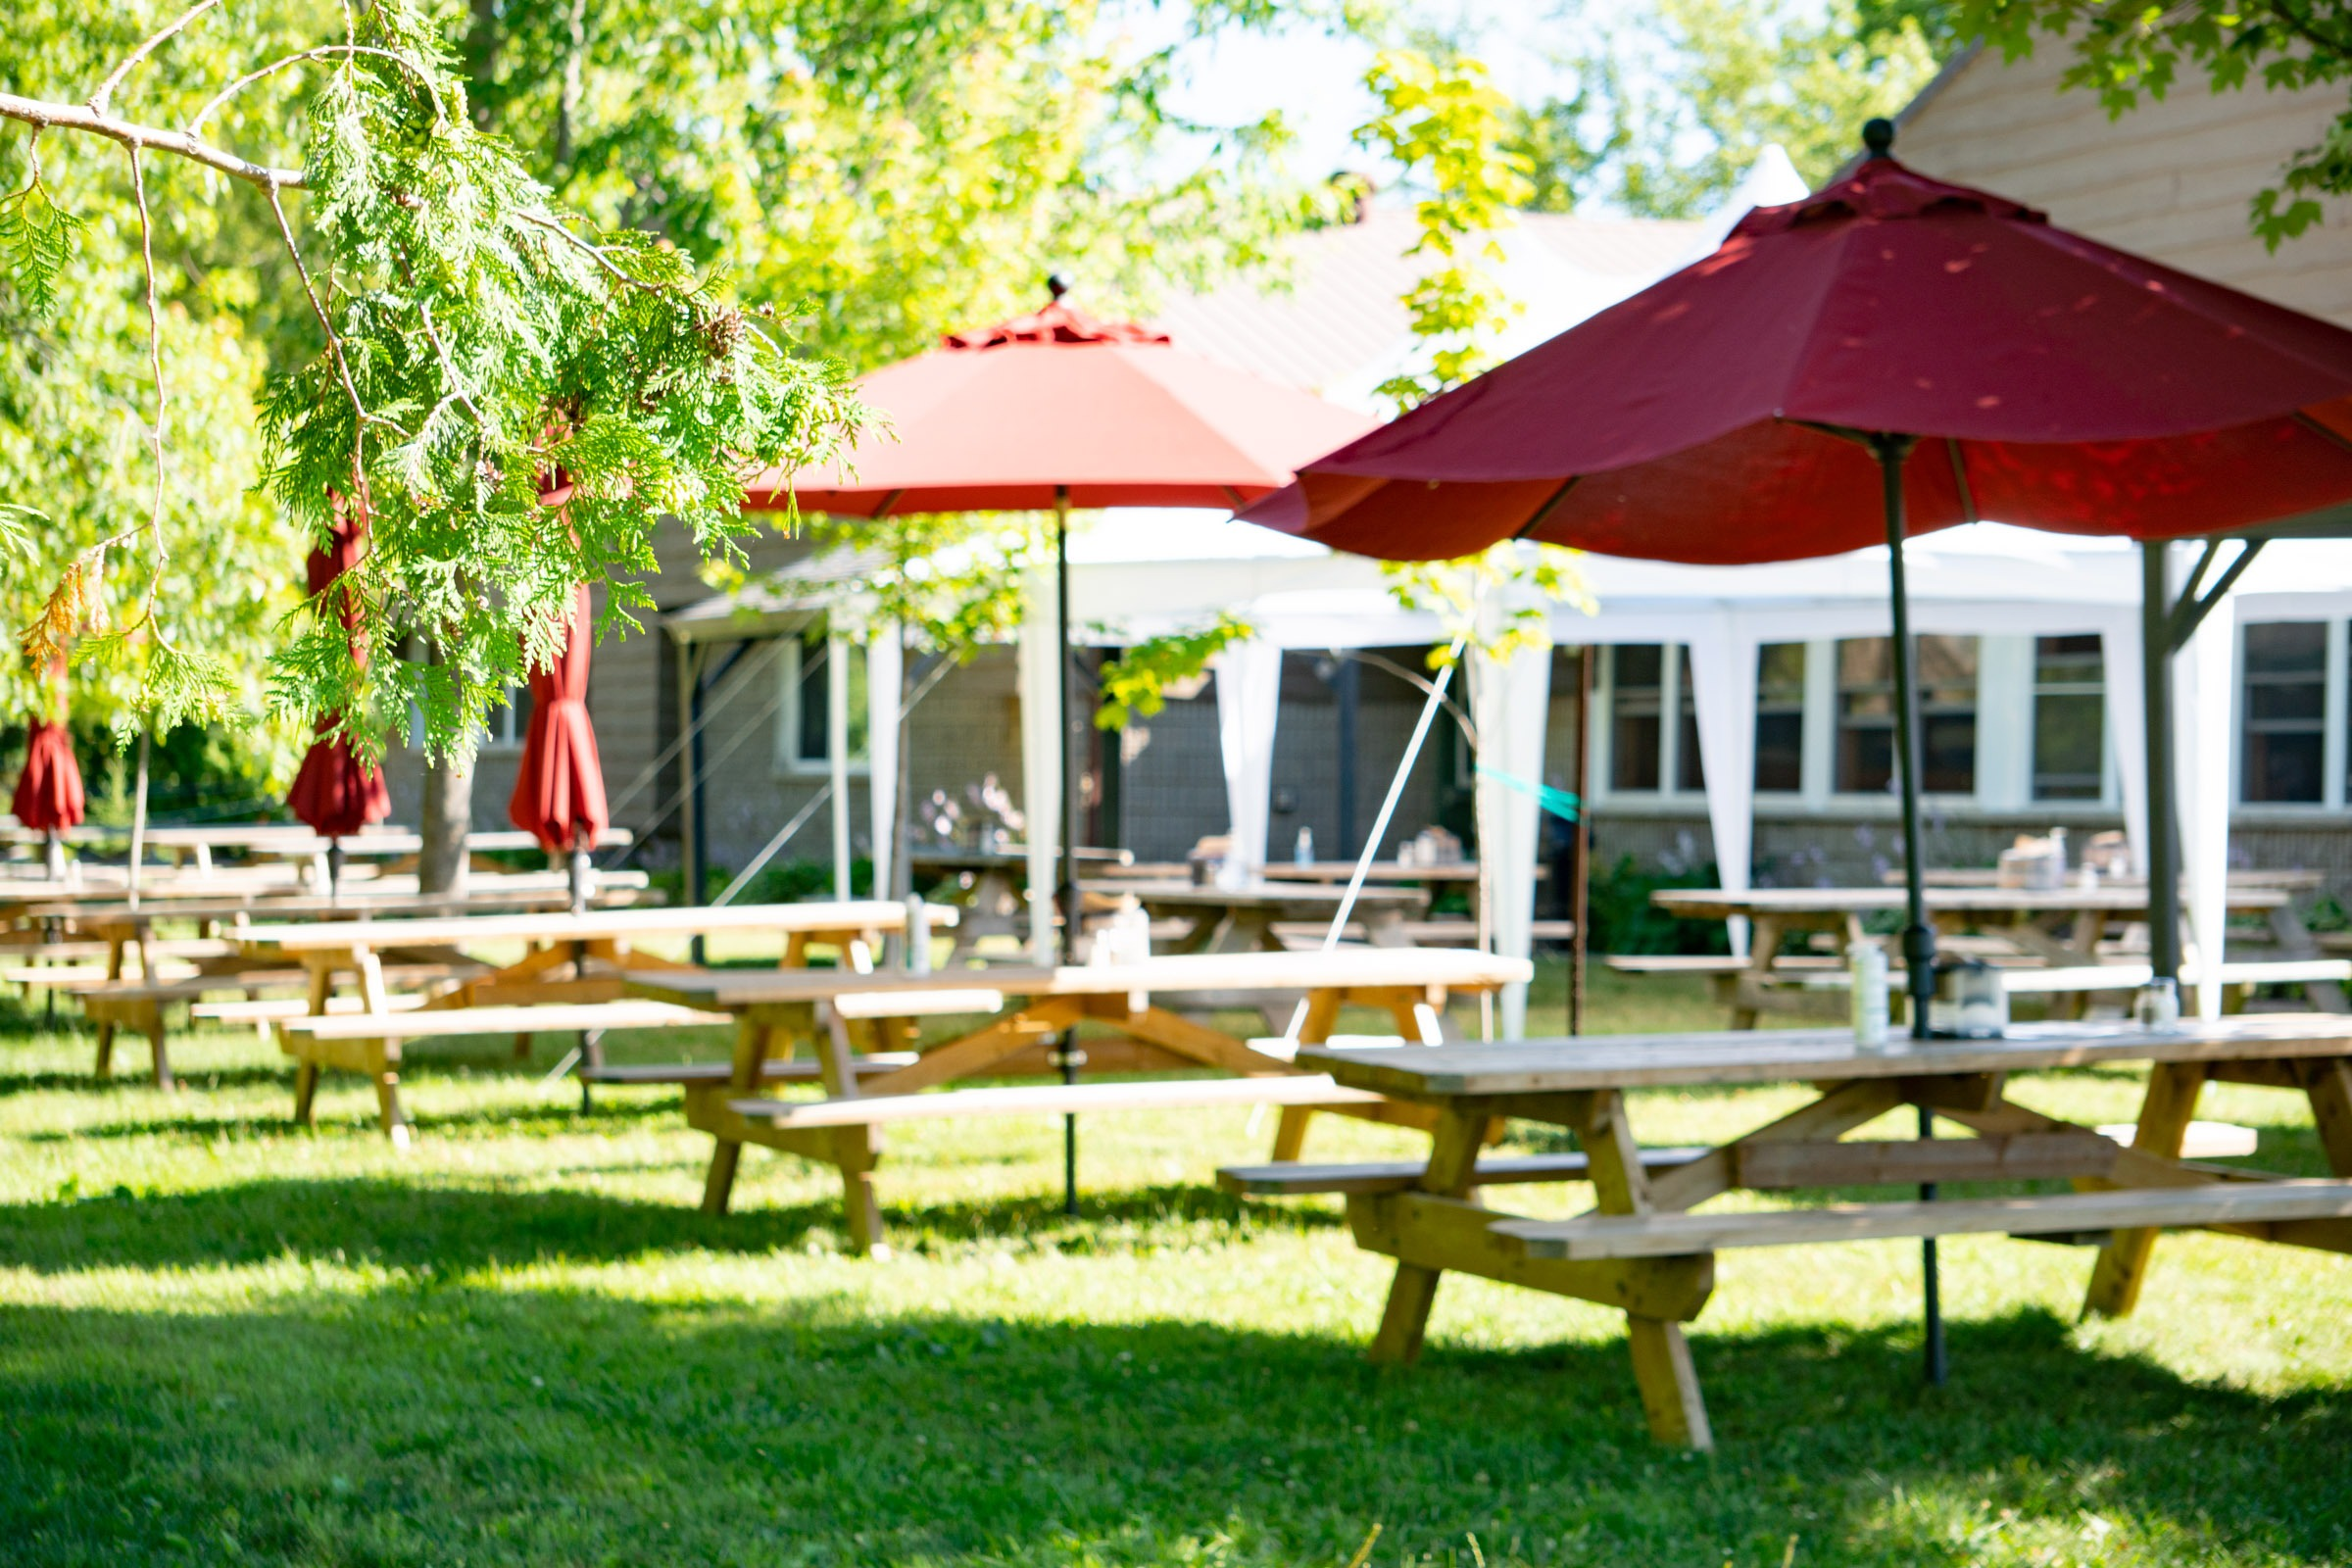 Tent and umbrellas shade picnic tables outside of MacDonald Lodge dining hall.